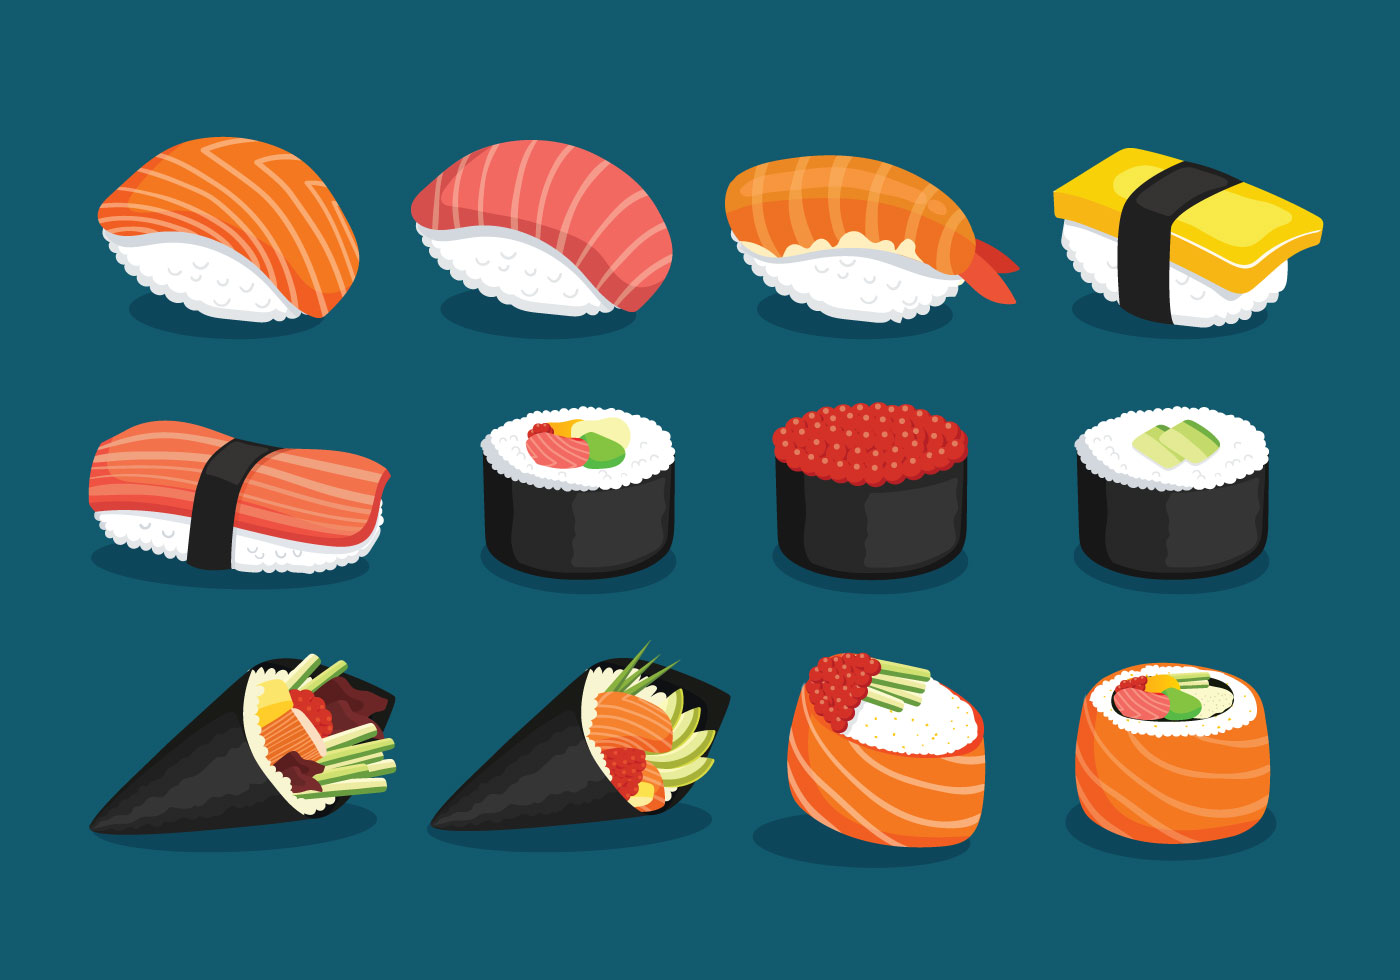 Cute Cartoon Sushi Wallpaper Variety Of Delicious Sushi Download Free Vector Art